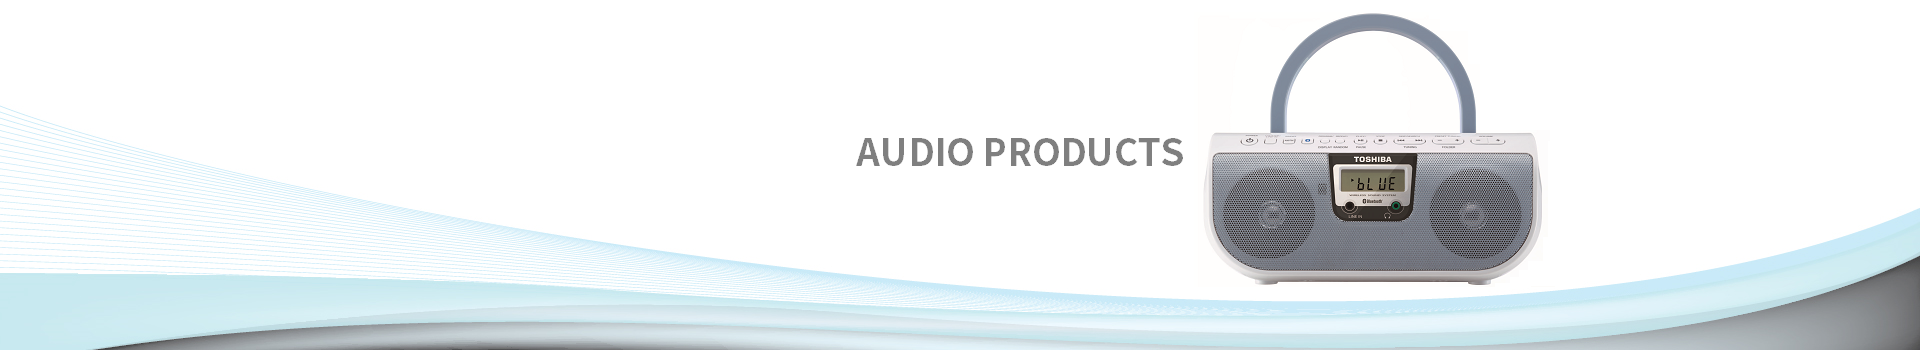 audio products banner